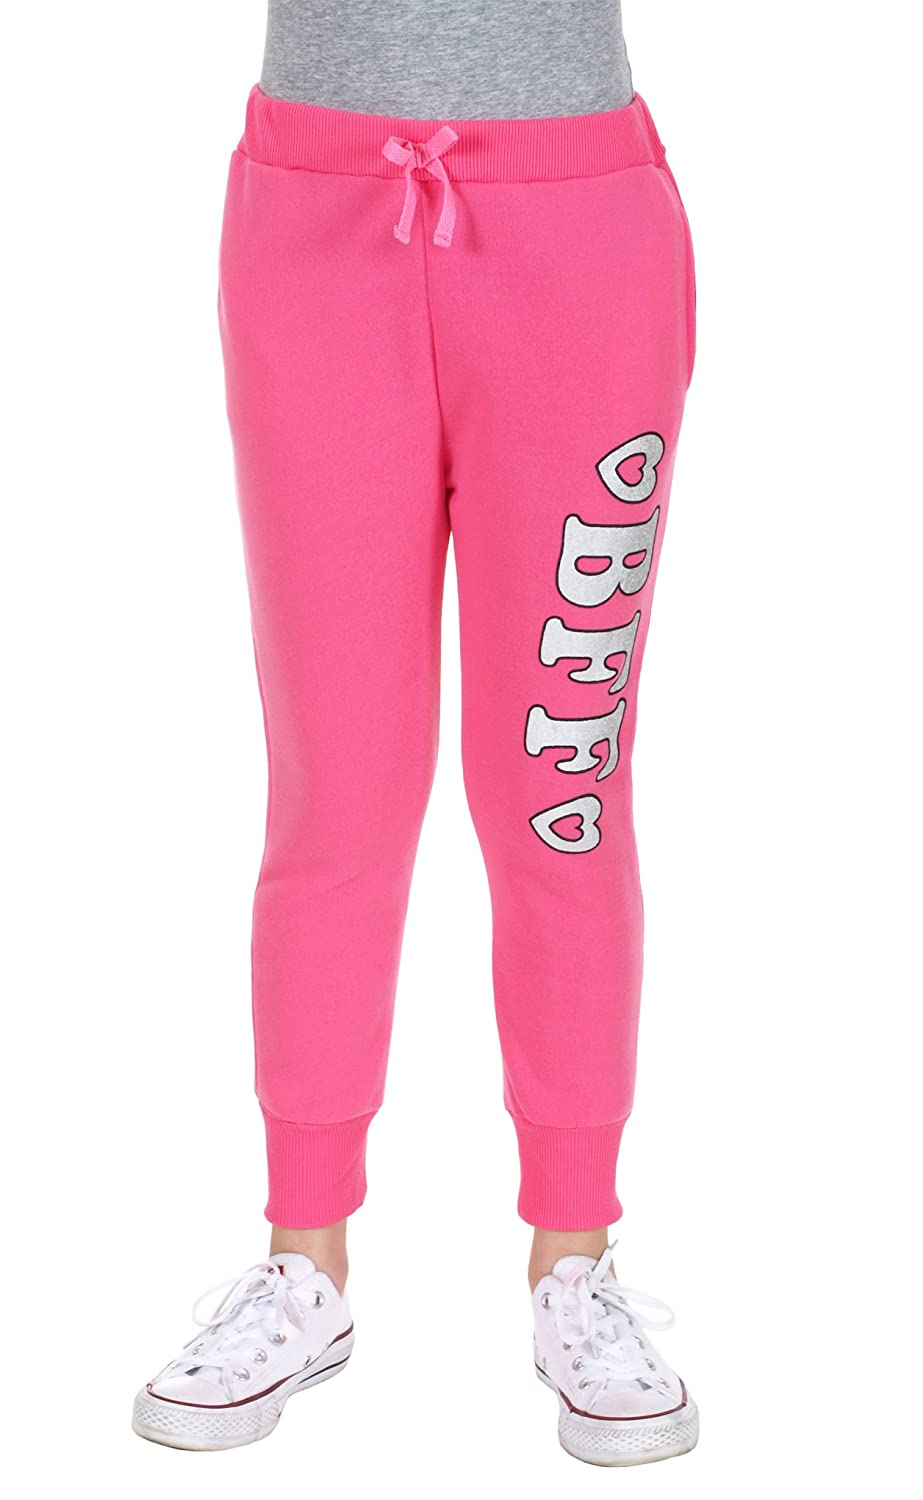 S.W.A.K... Girls Fashion Sweat Pants with BFF Fun Graphic Print - Girls Joggers Pink) 24932